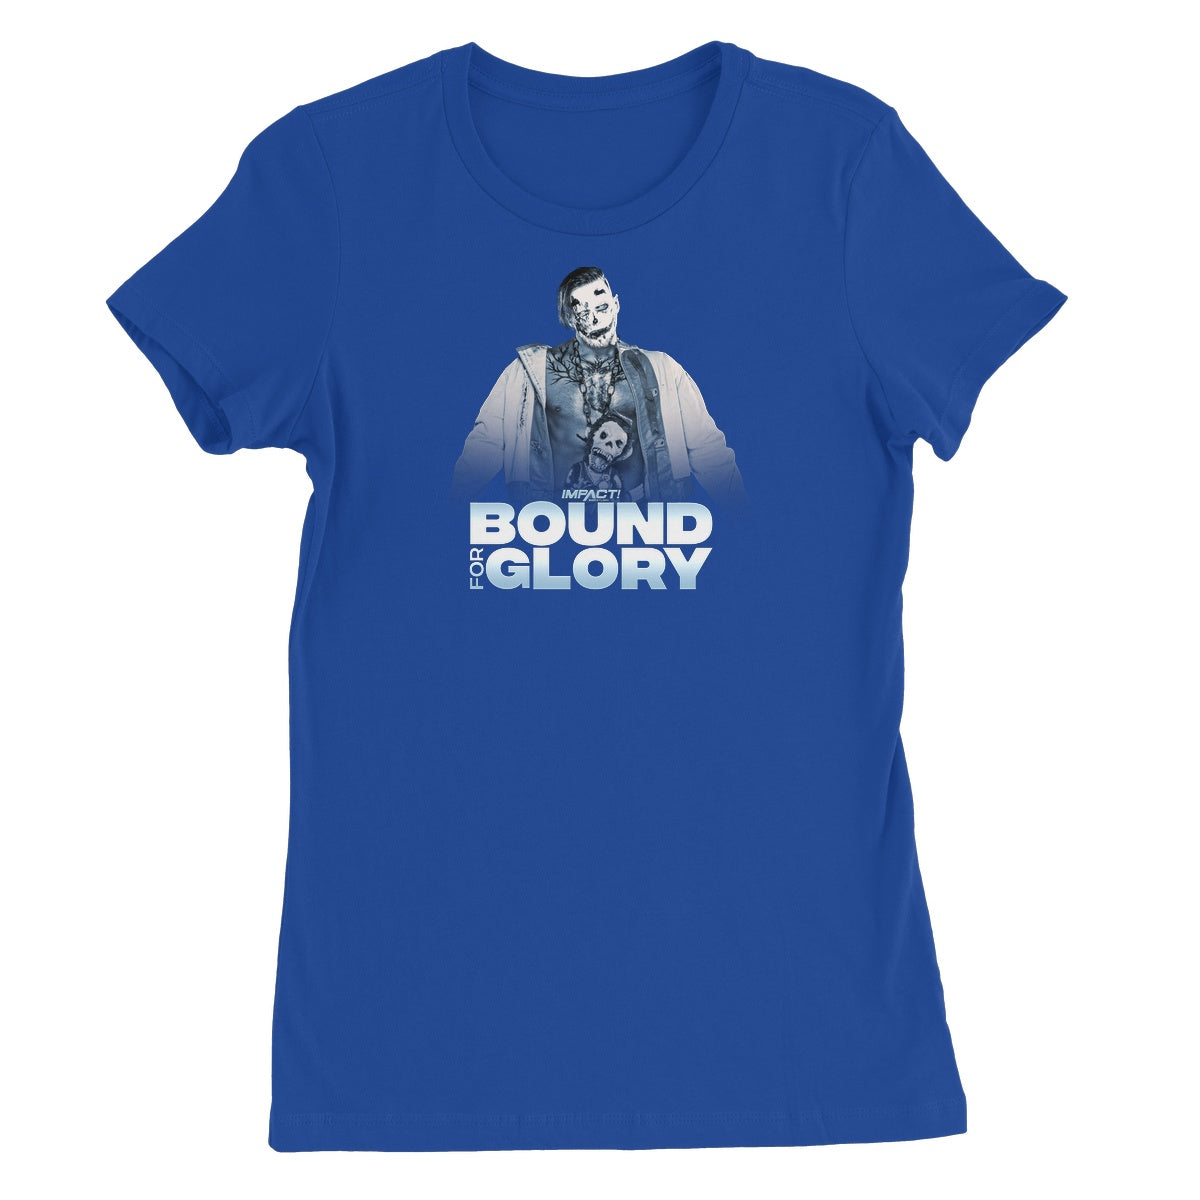 Bound For Glory 2020 - Crazzy Steve Women's Favourite T-Shirt